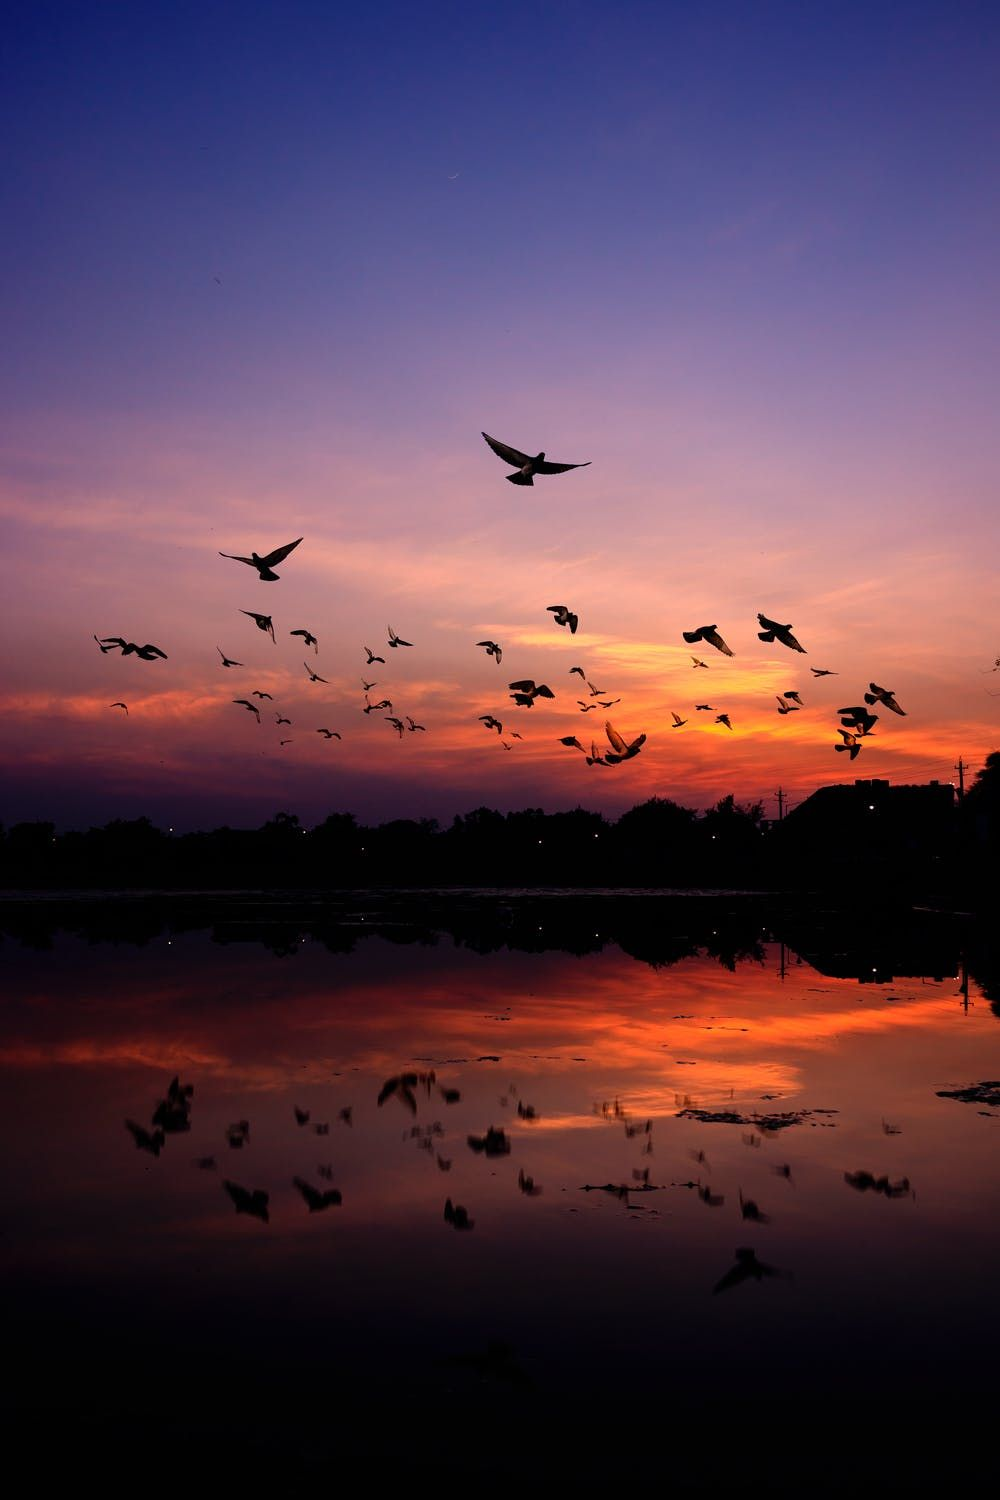 Birds flying into the sunset over the water